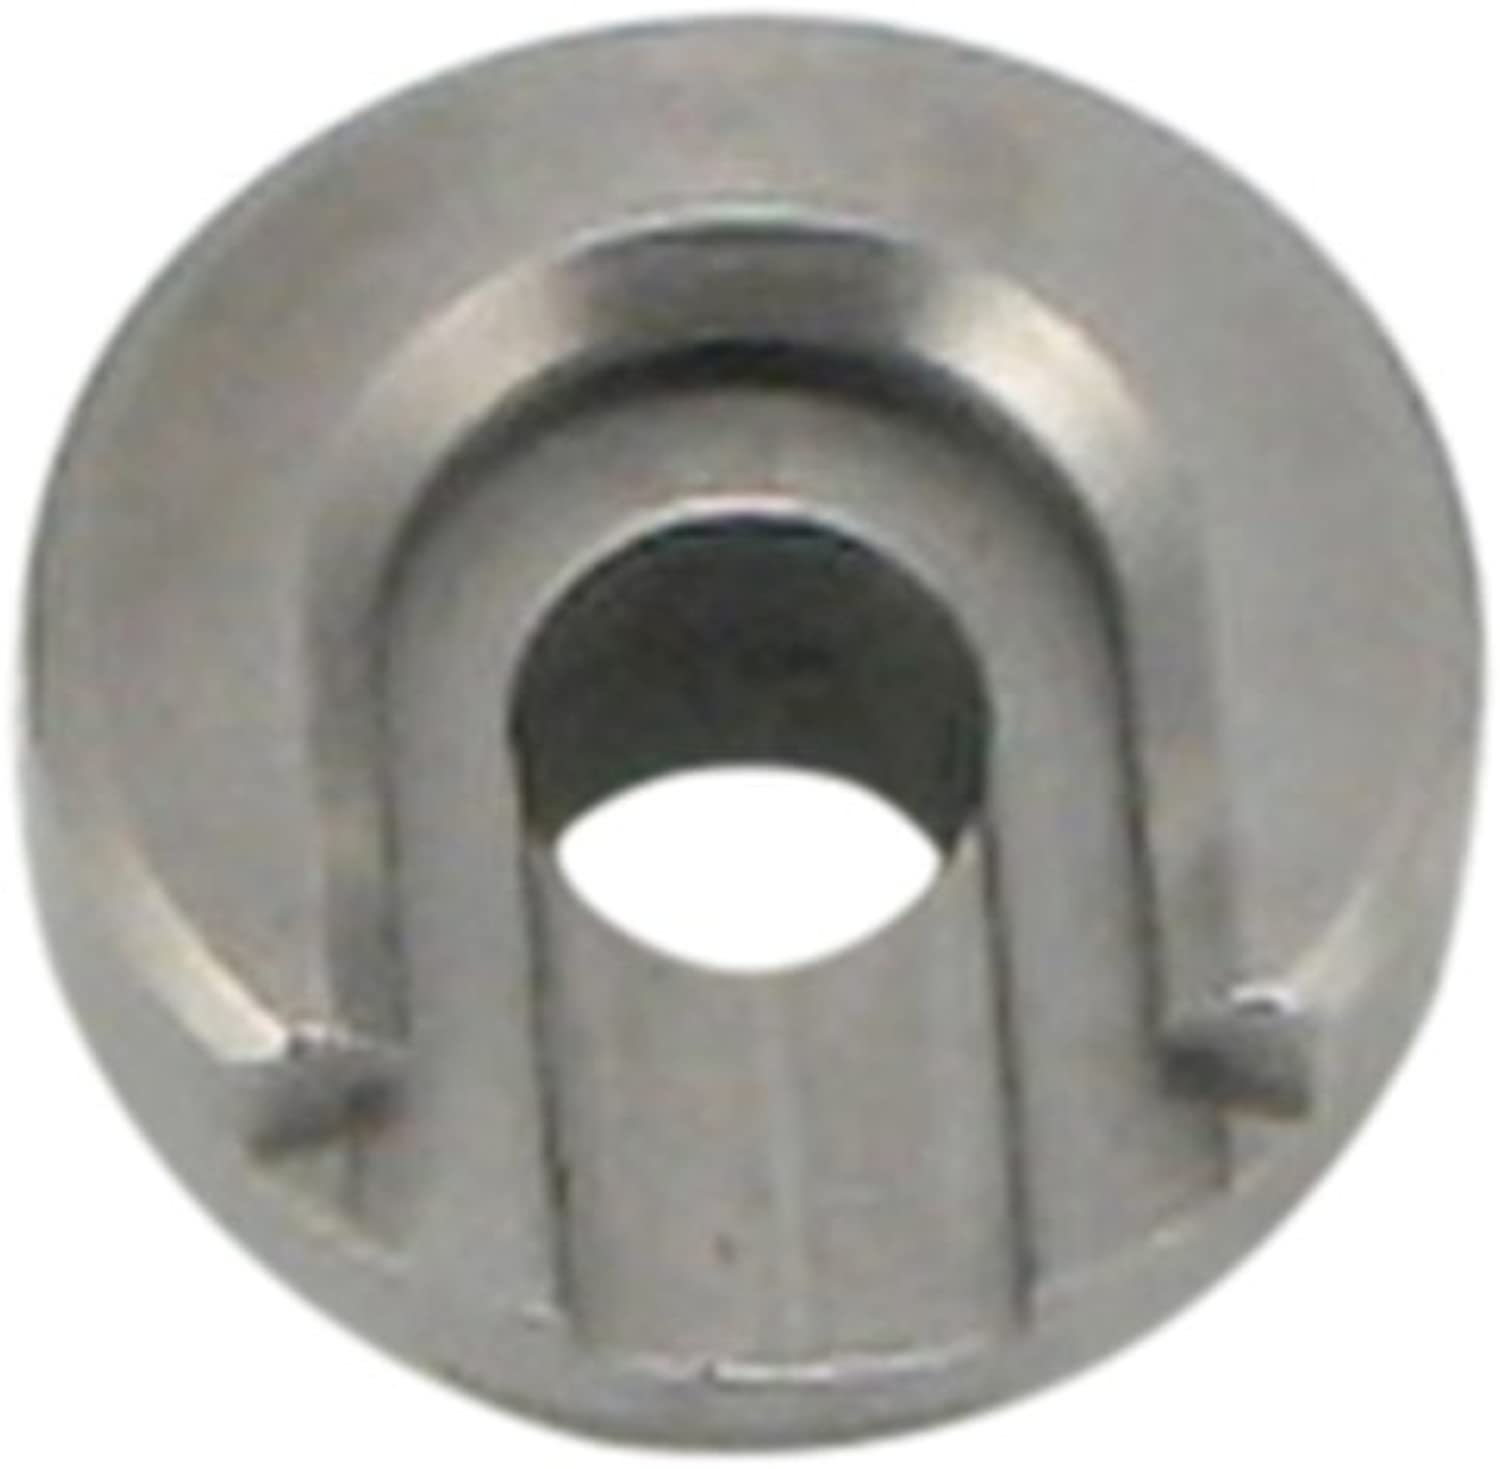 RCBS Shell Holder, No.13 by RCBS